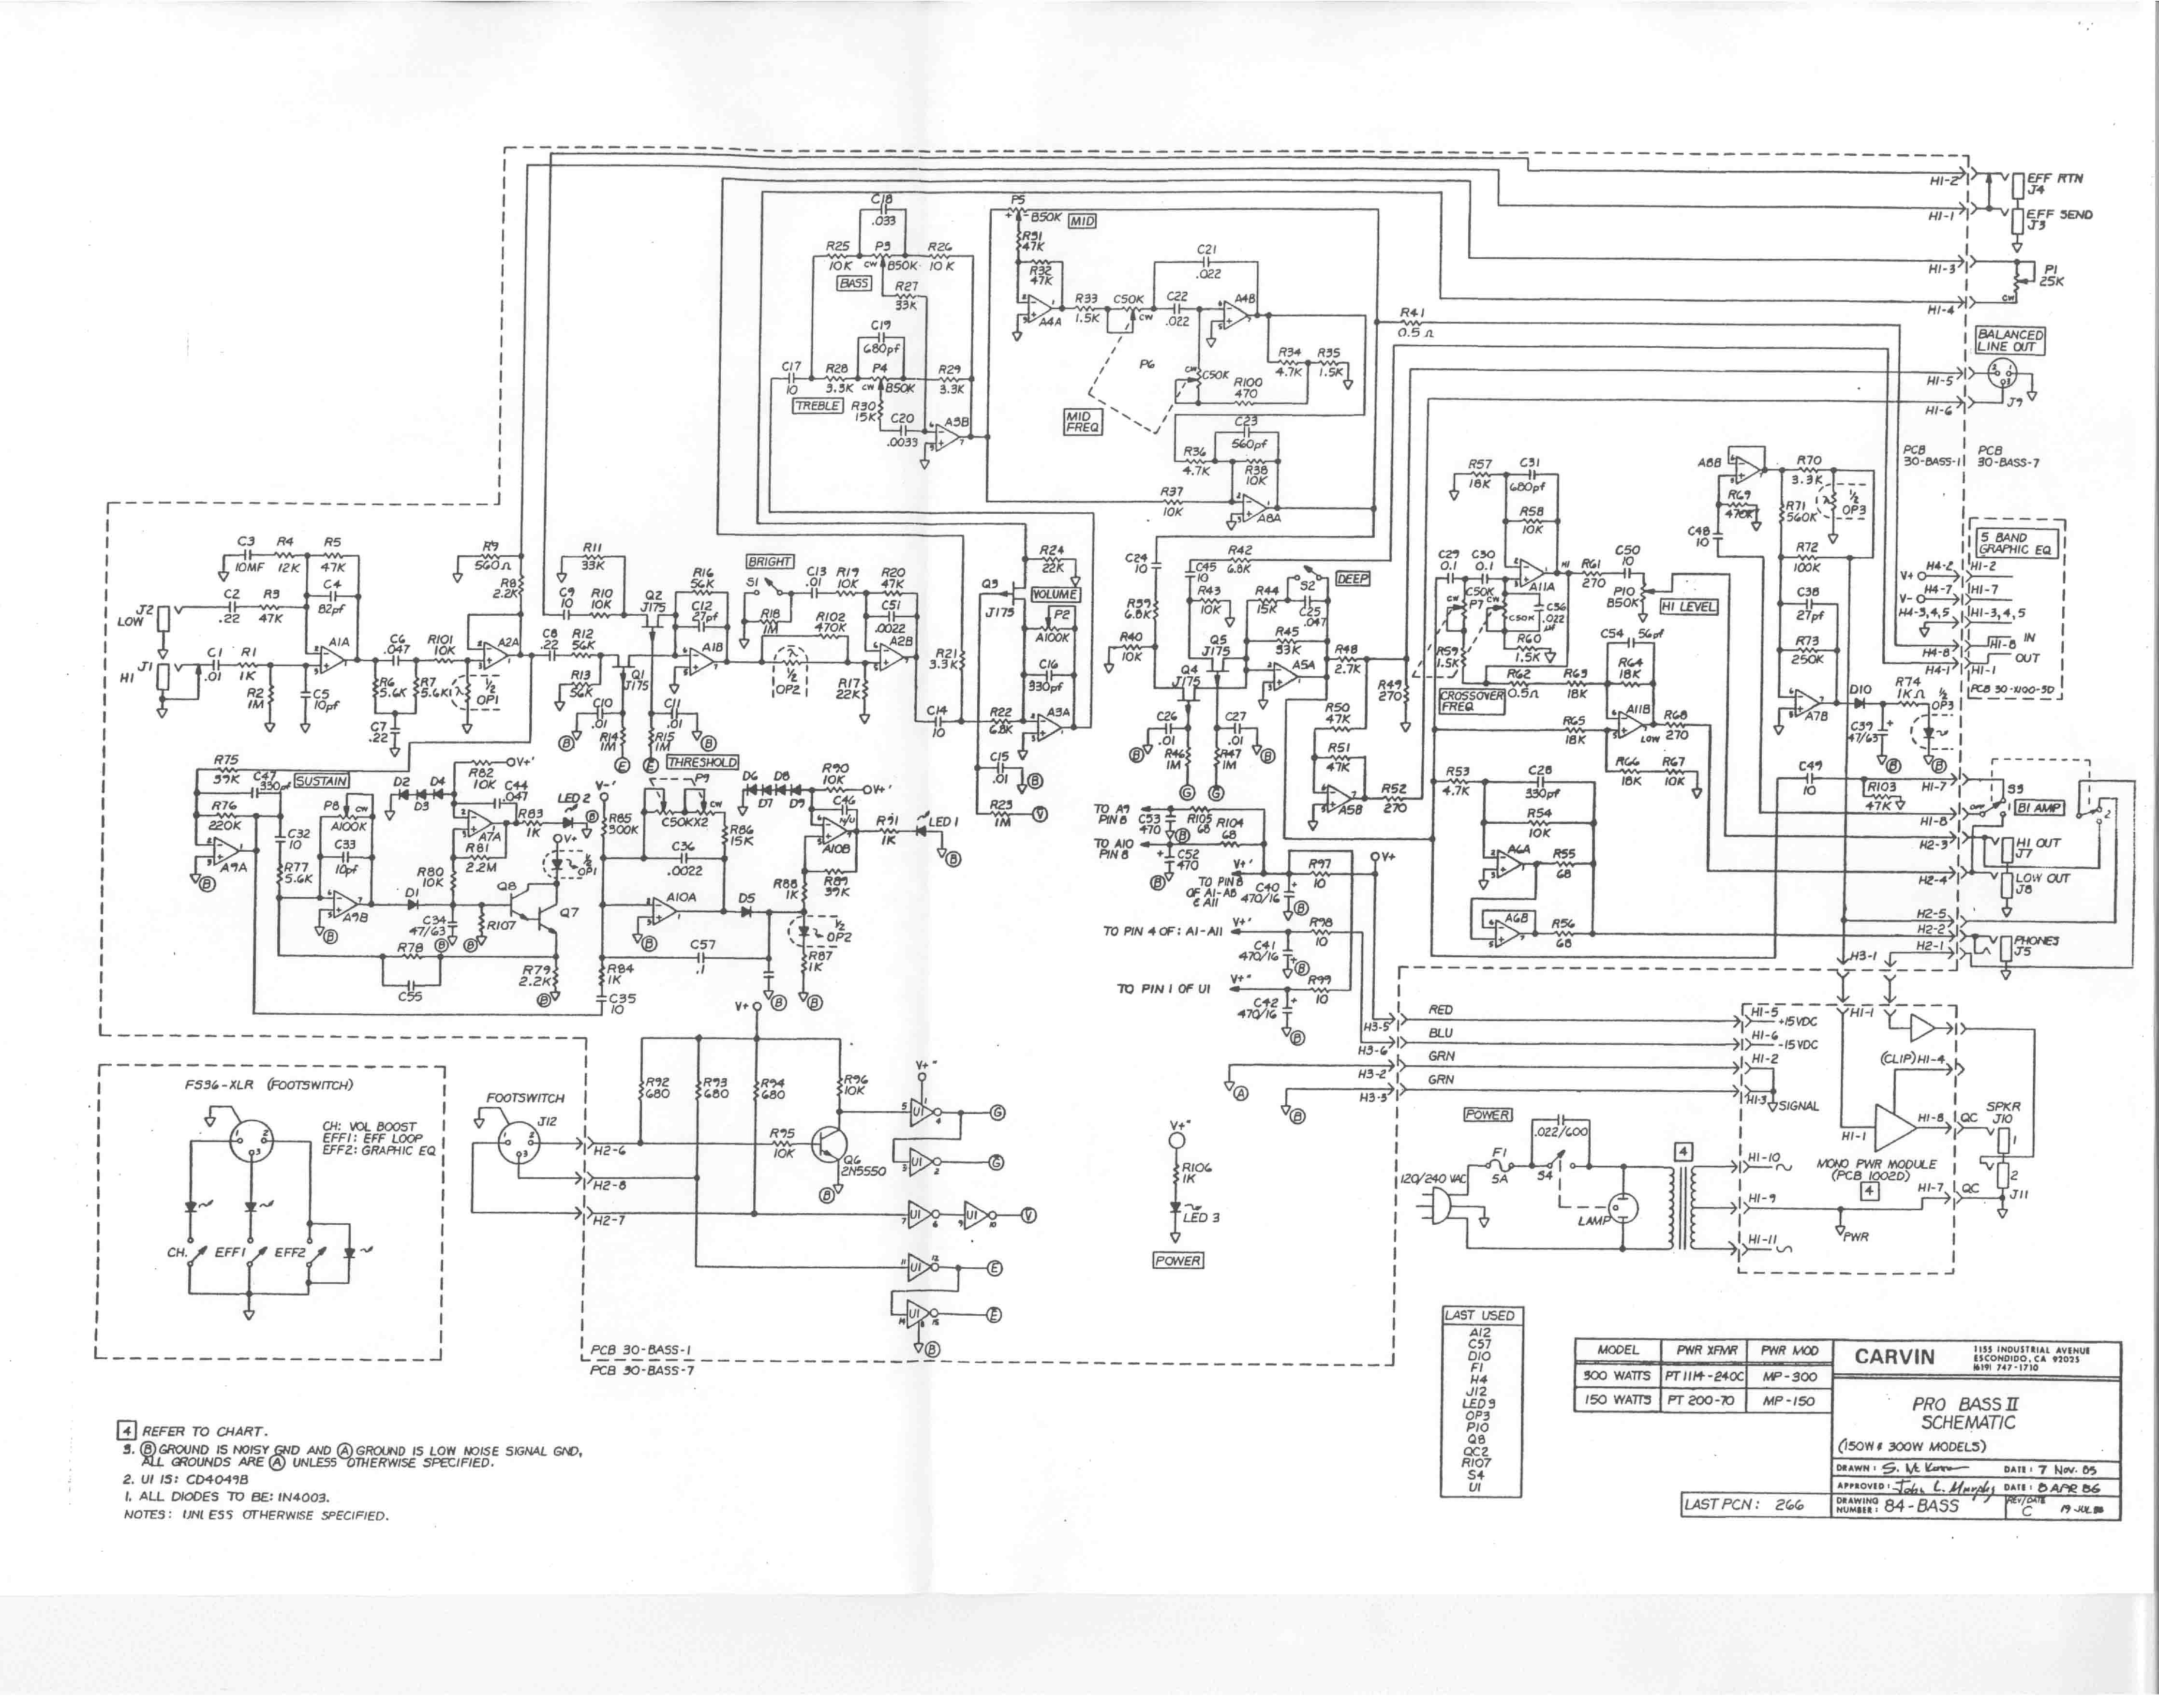 Carvin X100b Schematic